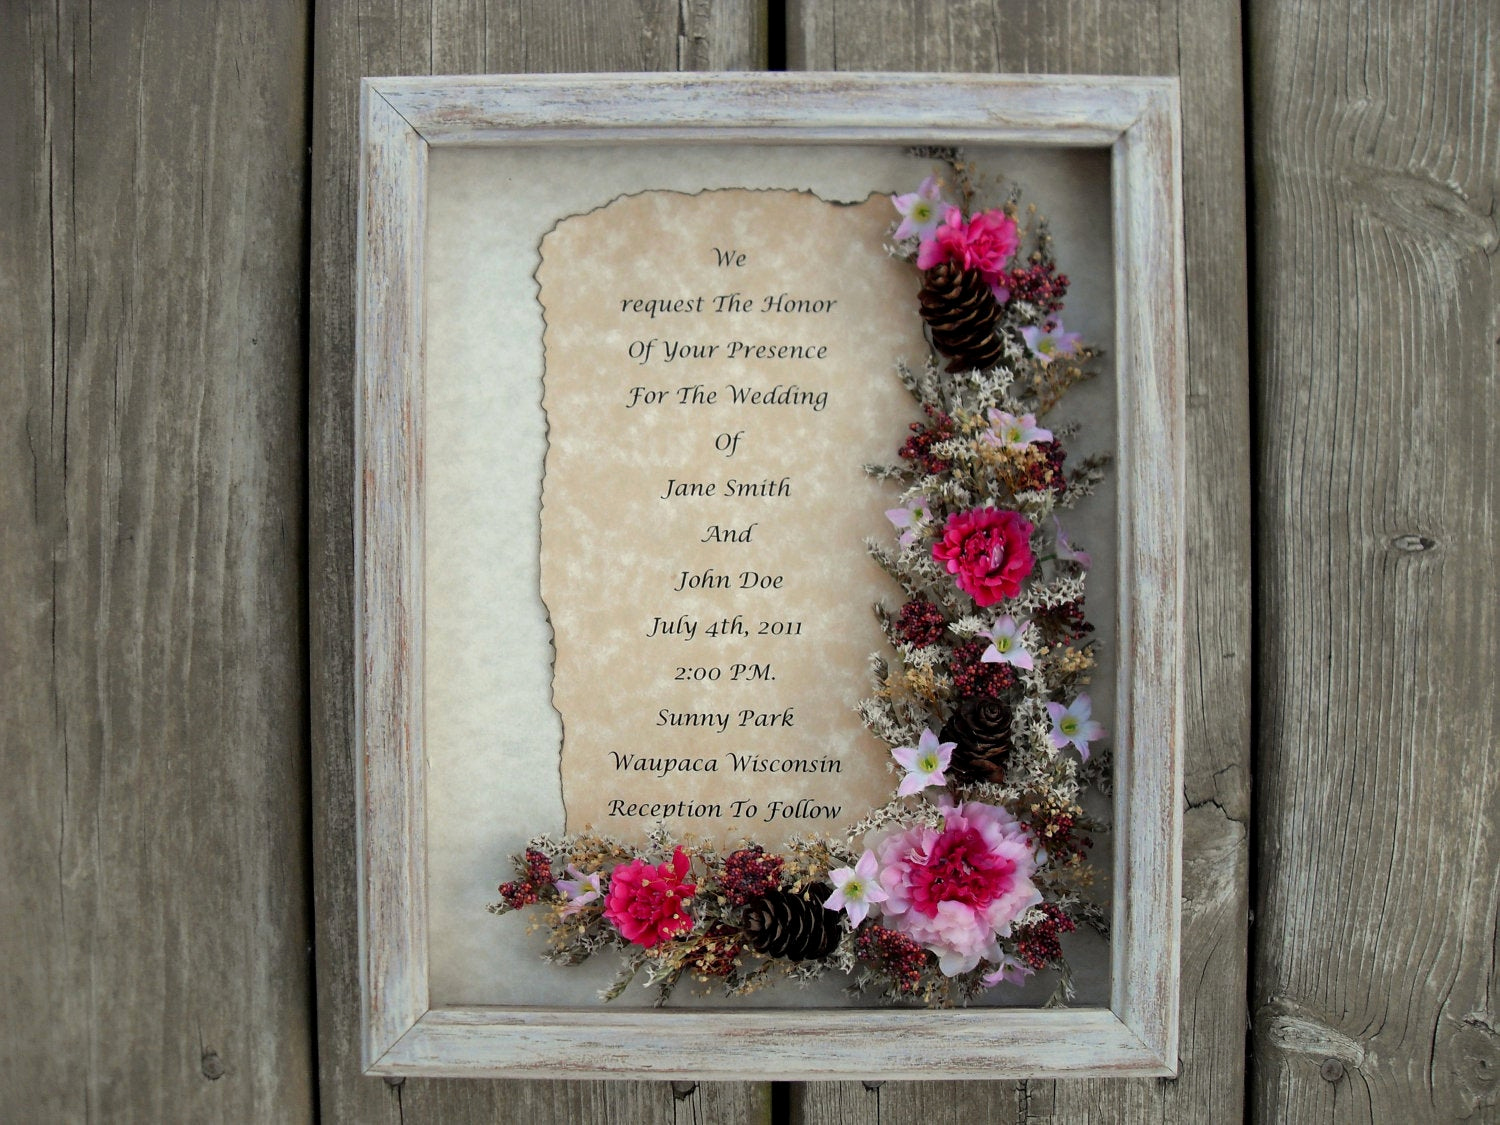 Wedding Invitation Shadow Box Ideas Best Of Items Similar to Custom Wedding Invitation Shadow Box